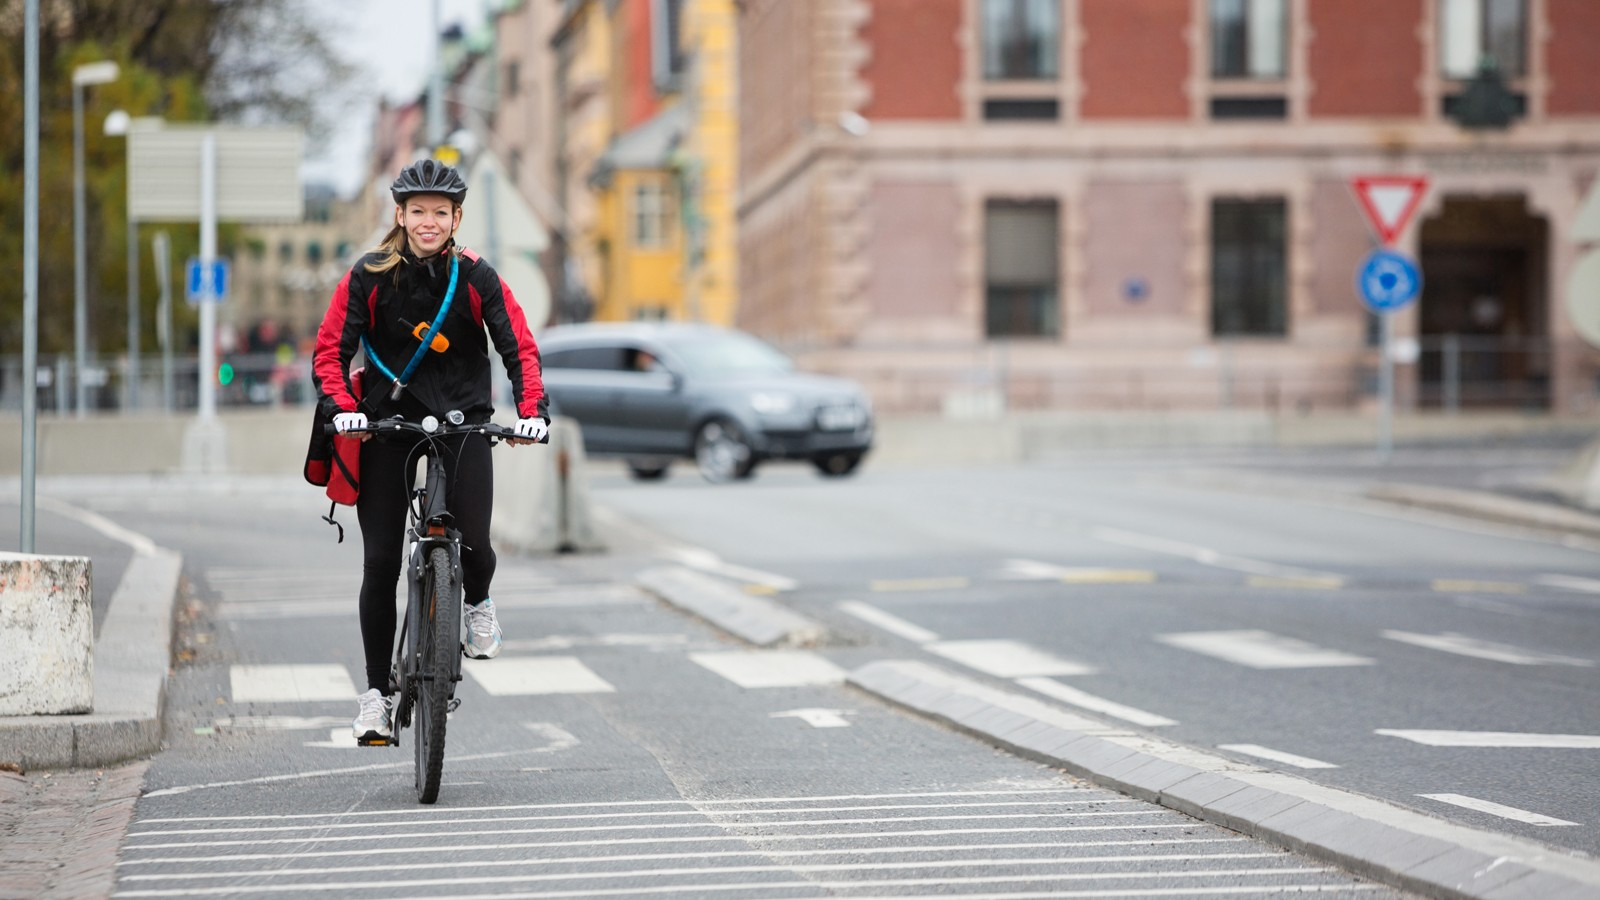 Female Cyclist With Courier Delivery Bag On Street